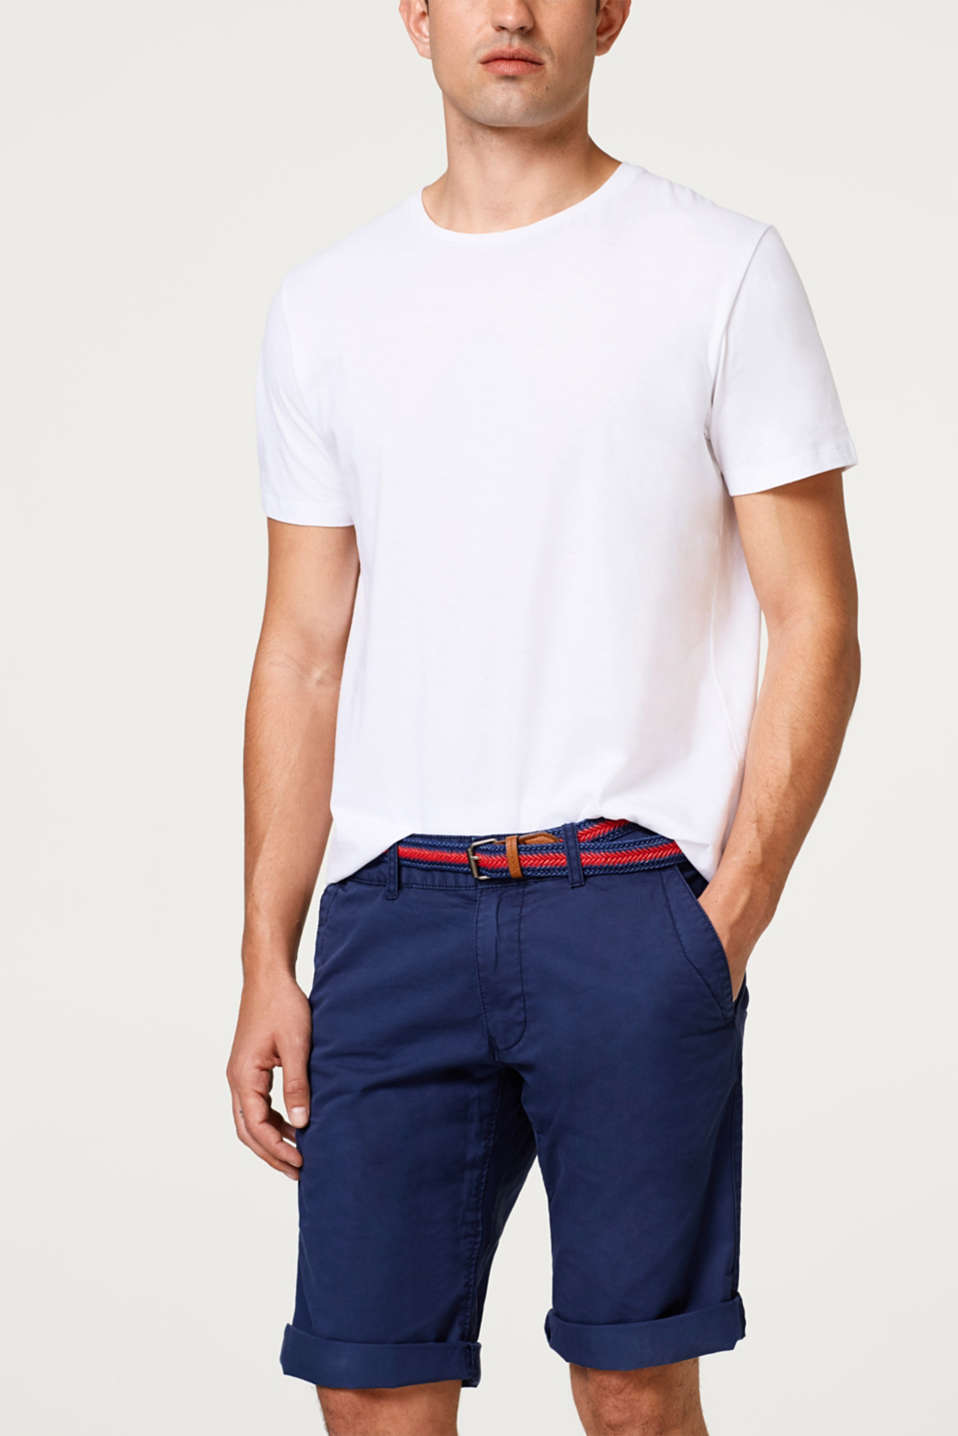 edc - Cotton chino shorts plus woven belt